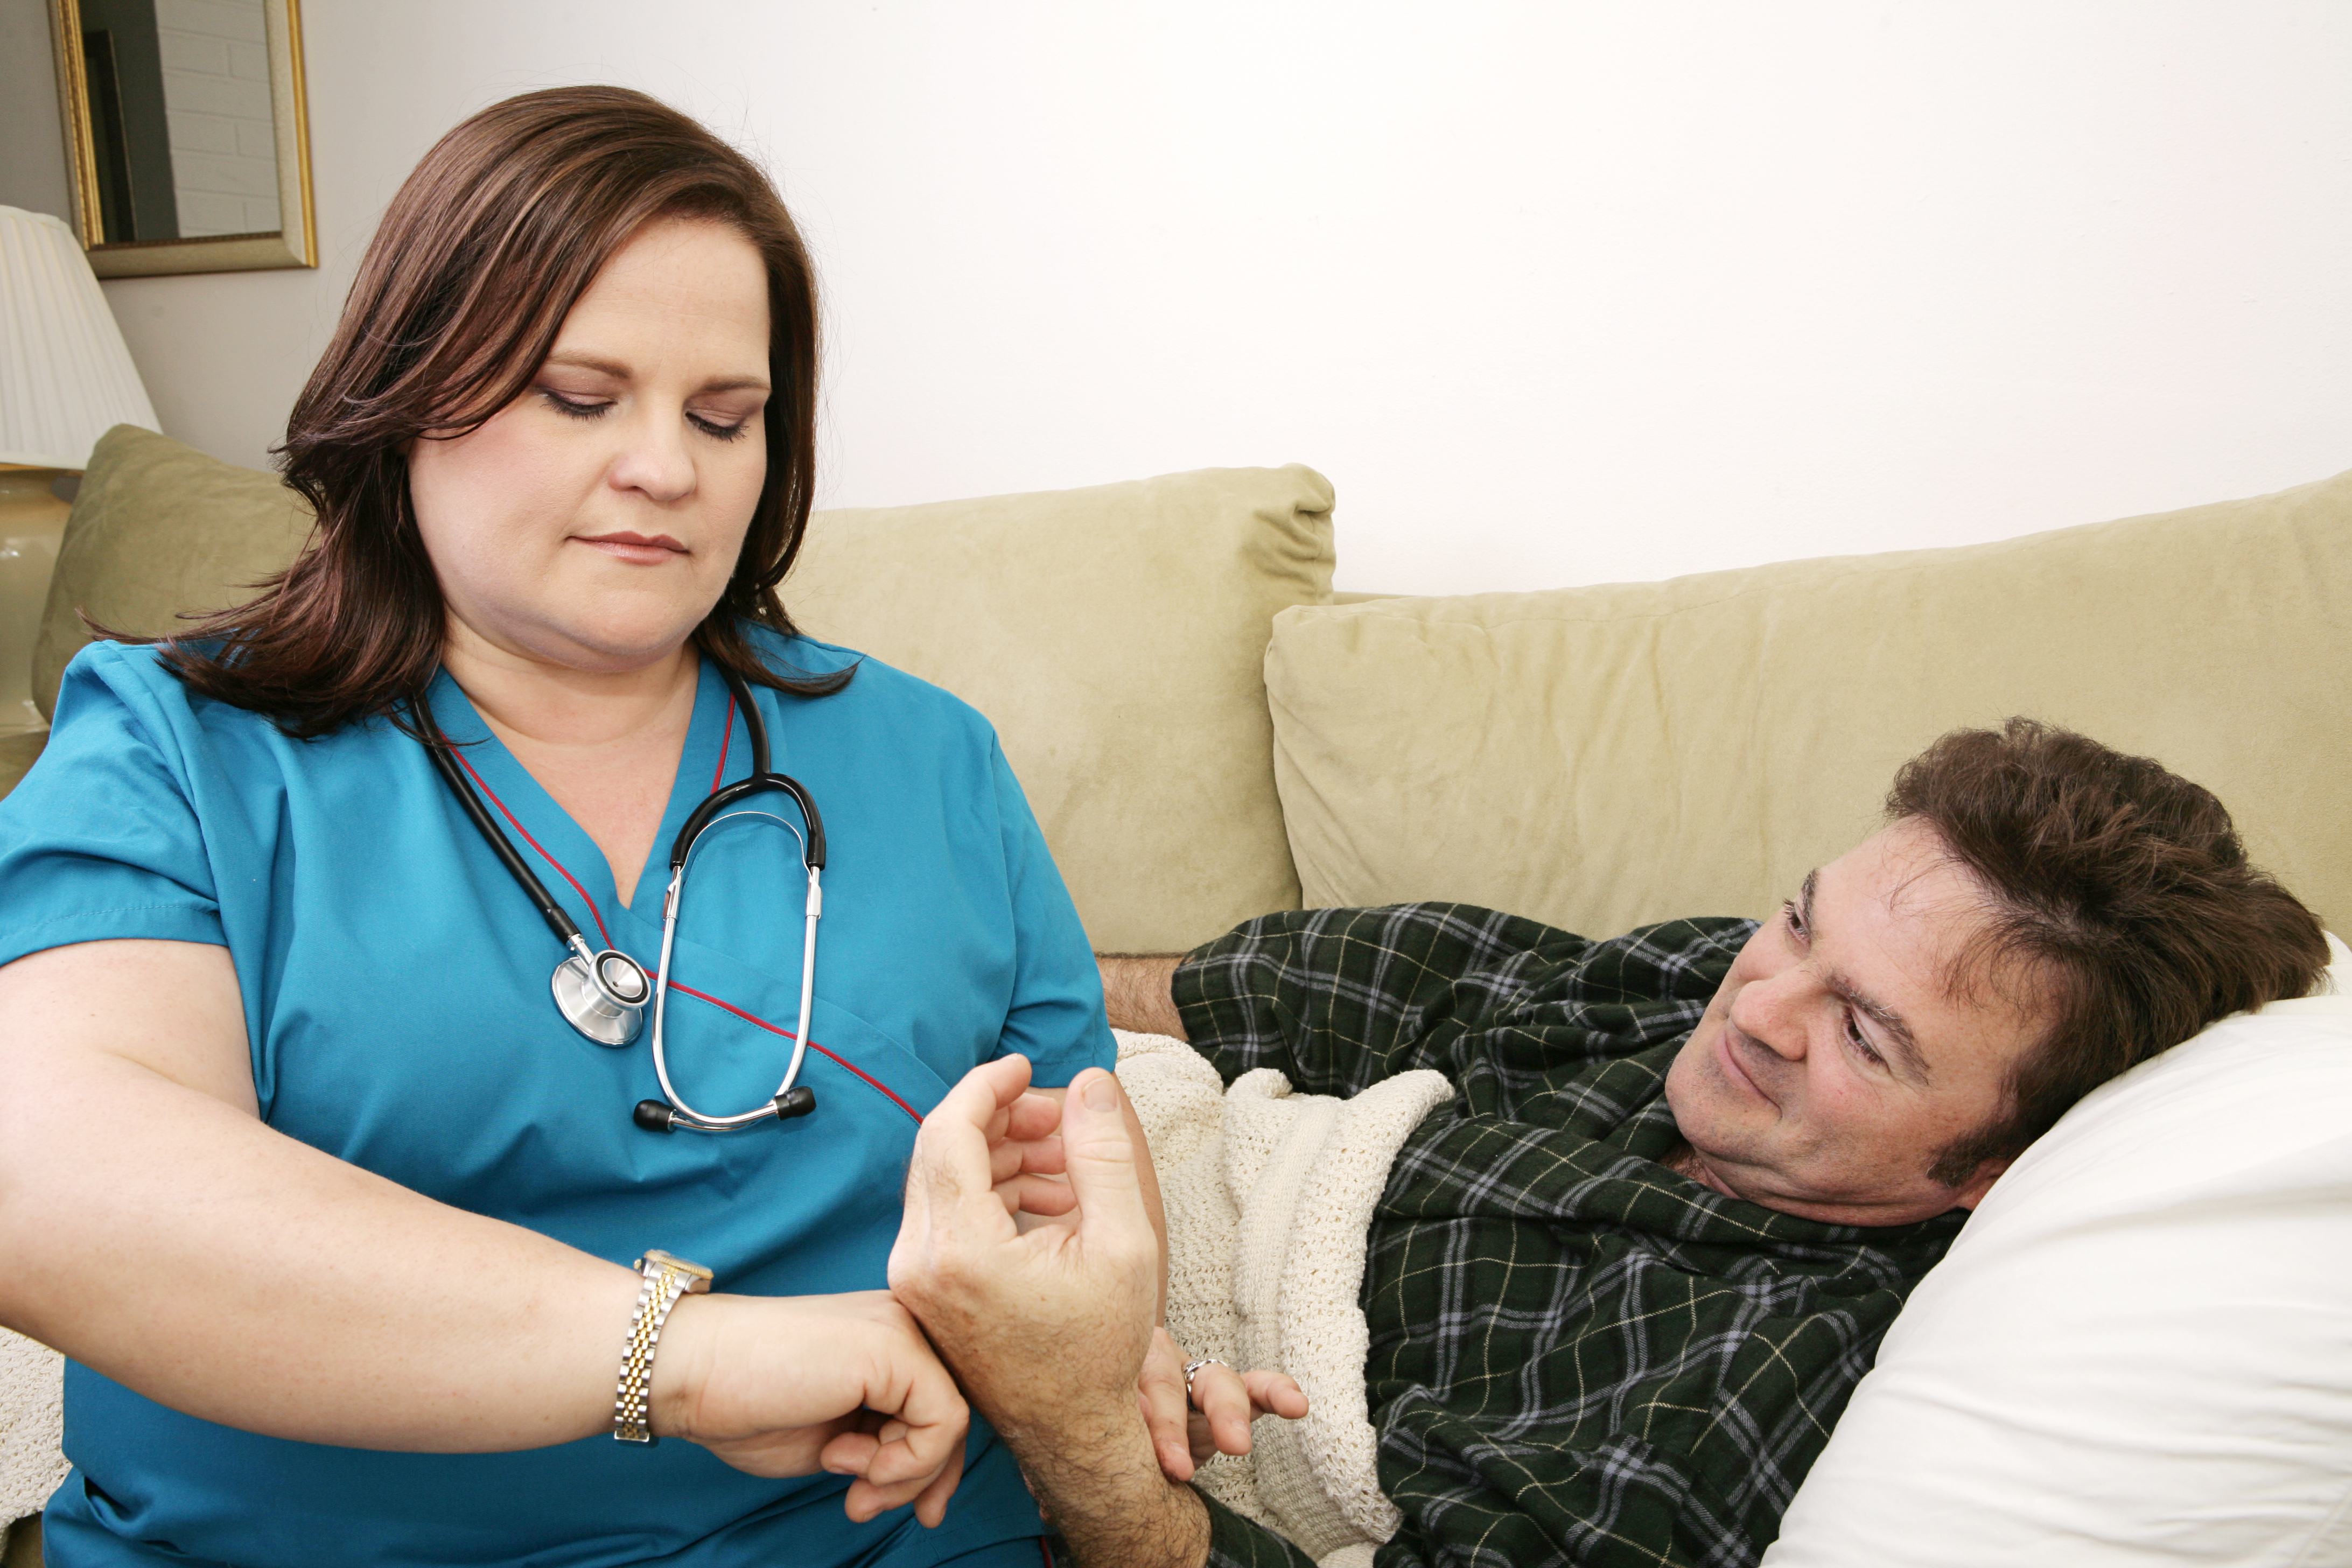 A home health nurse taking the patient's pulse.